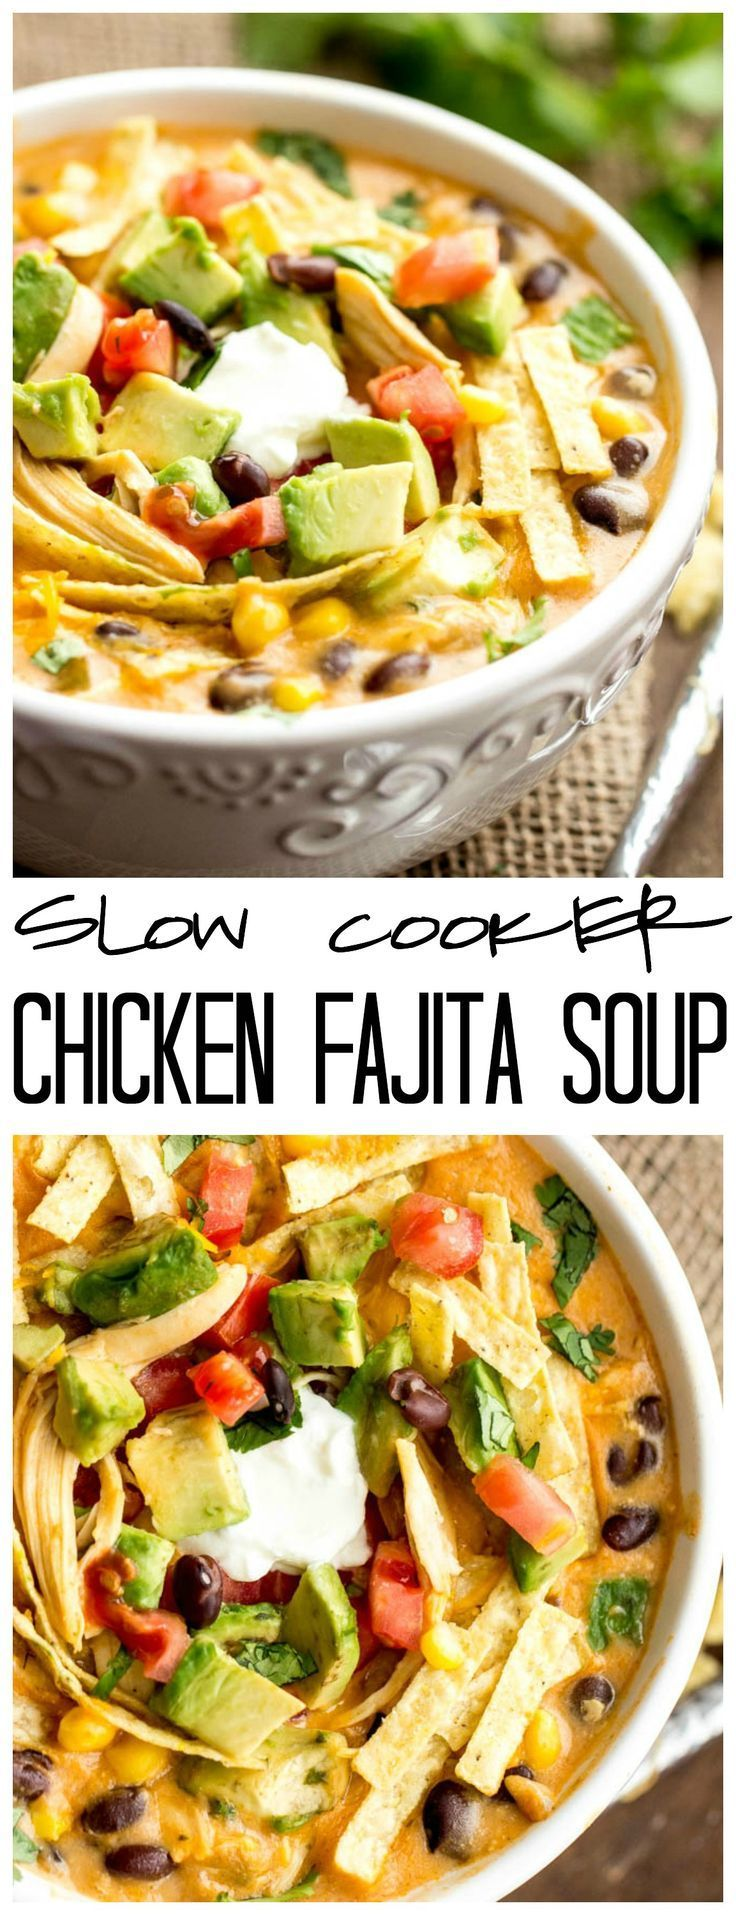 This Slow Cooker Chicken Fajita Soup takes 5 minutes to throw into the crockpot…